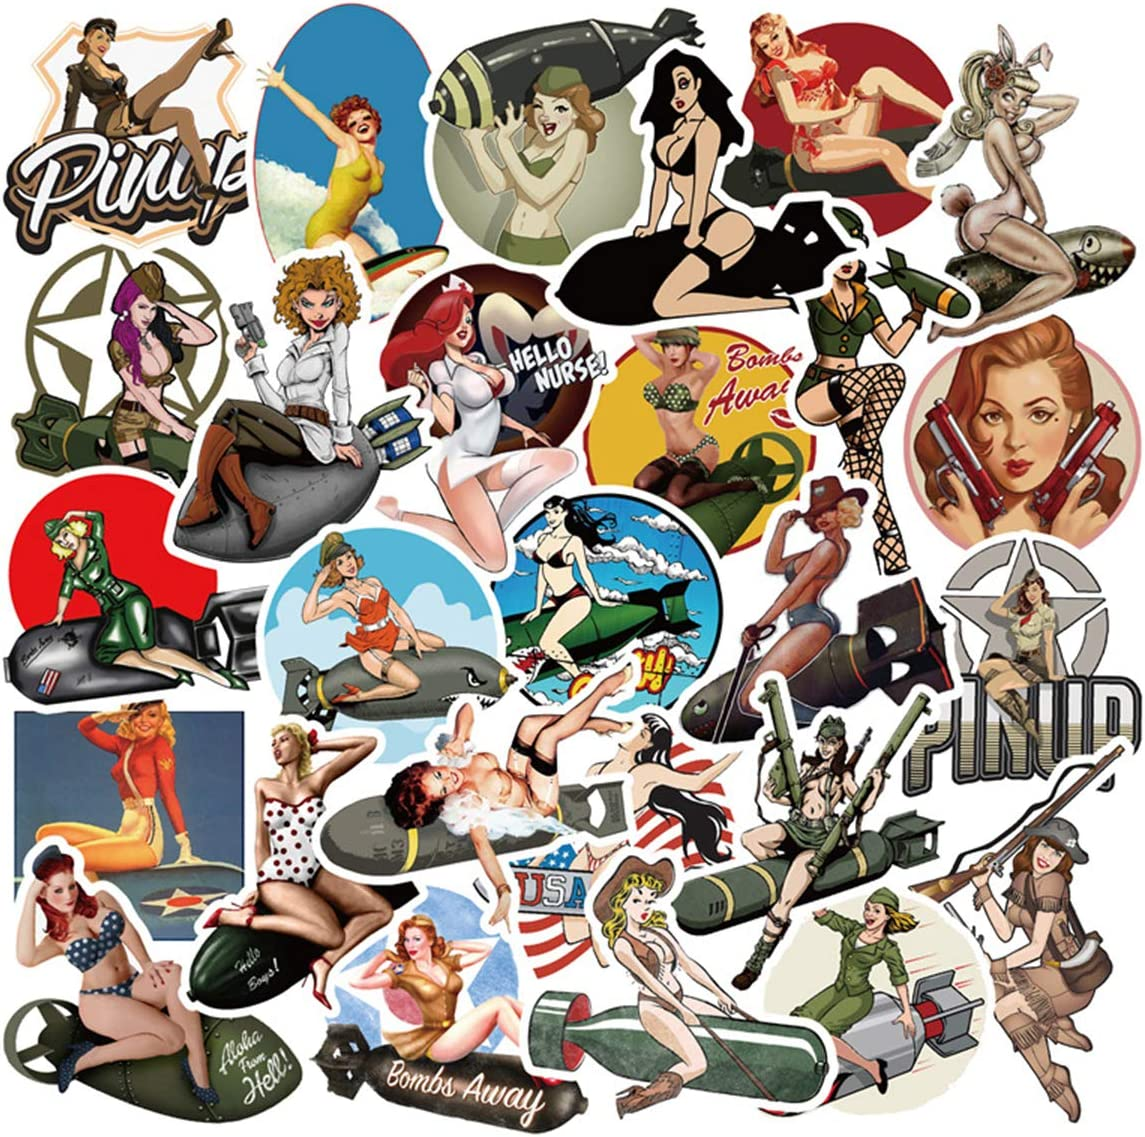 50pcs Pin Up Girl Stickers for Laptop Water Bottle Luggage Snowboard Bicycle Skateboard Decal for Kids Teens Adult Waterproof Aesthetic Stickers (Pin Up Girl)